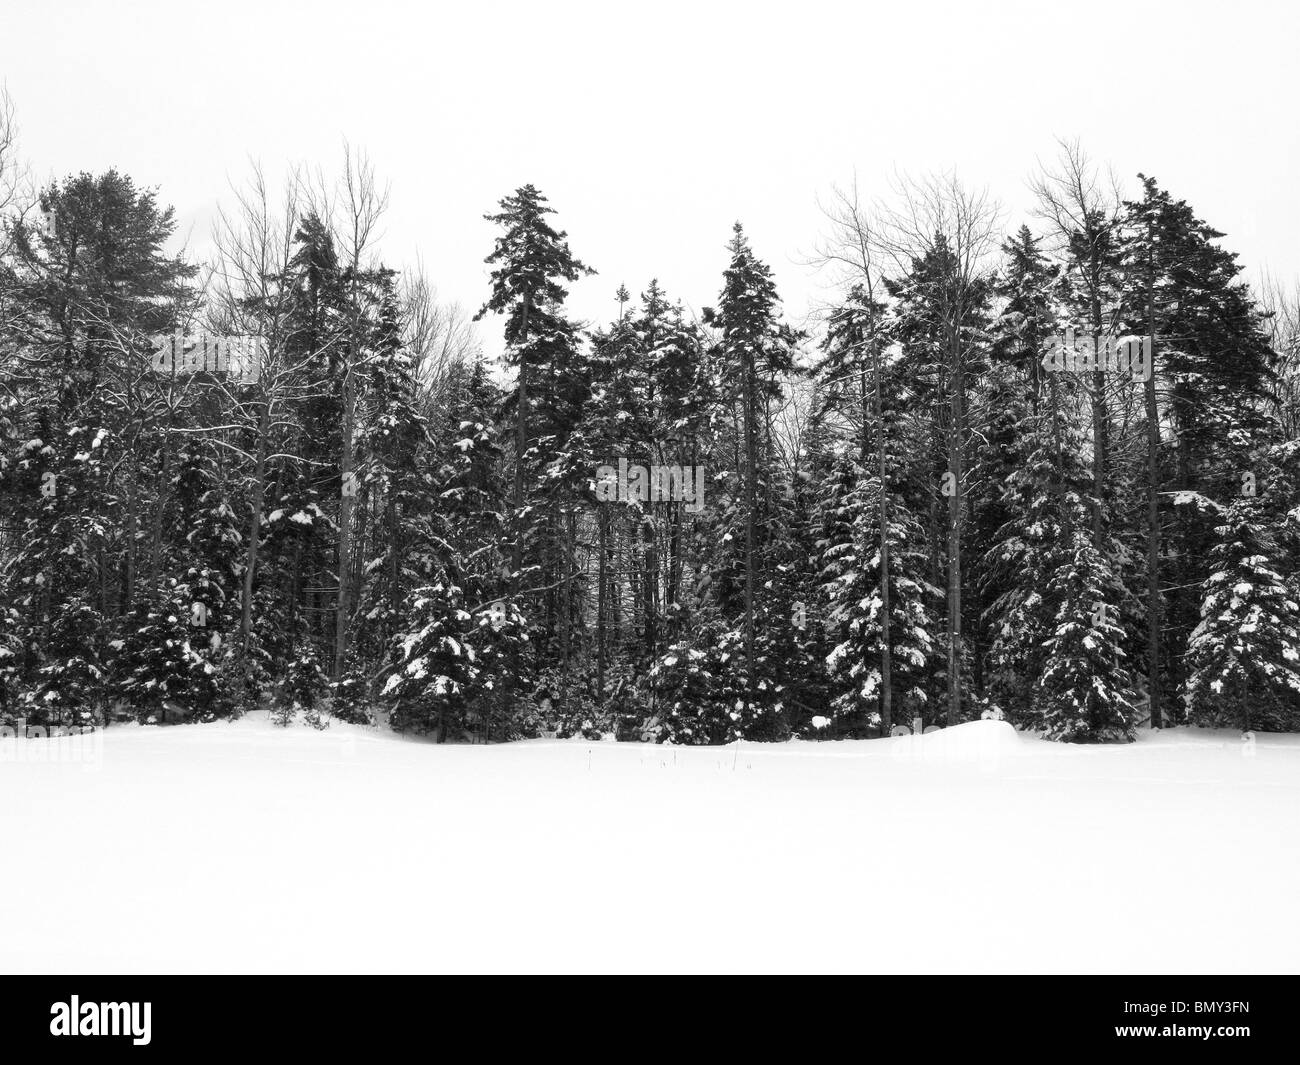 A line of forest green pine trees covered with winter snow - Images of pine trees in snow ...